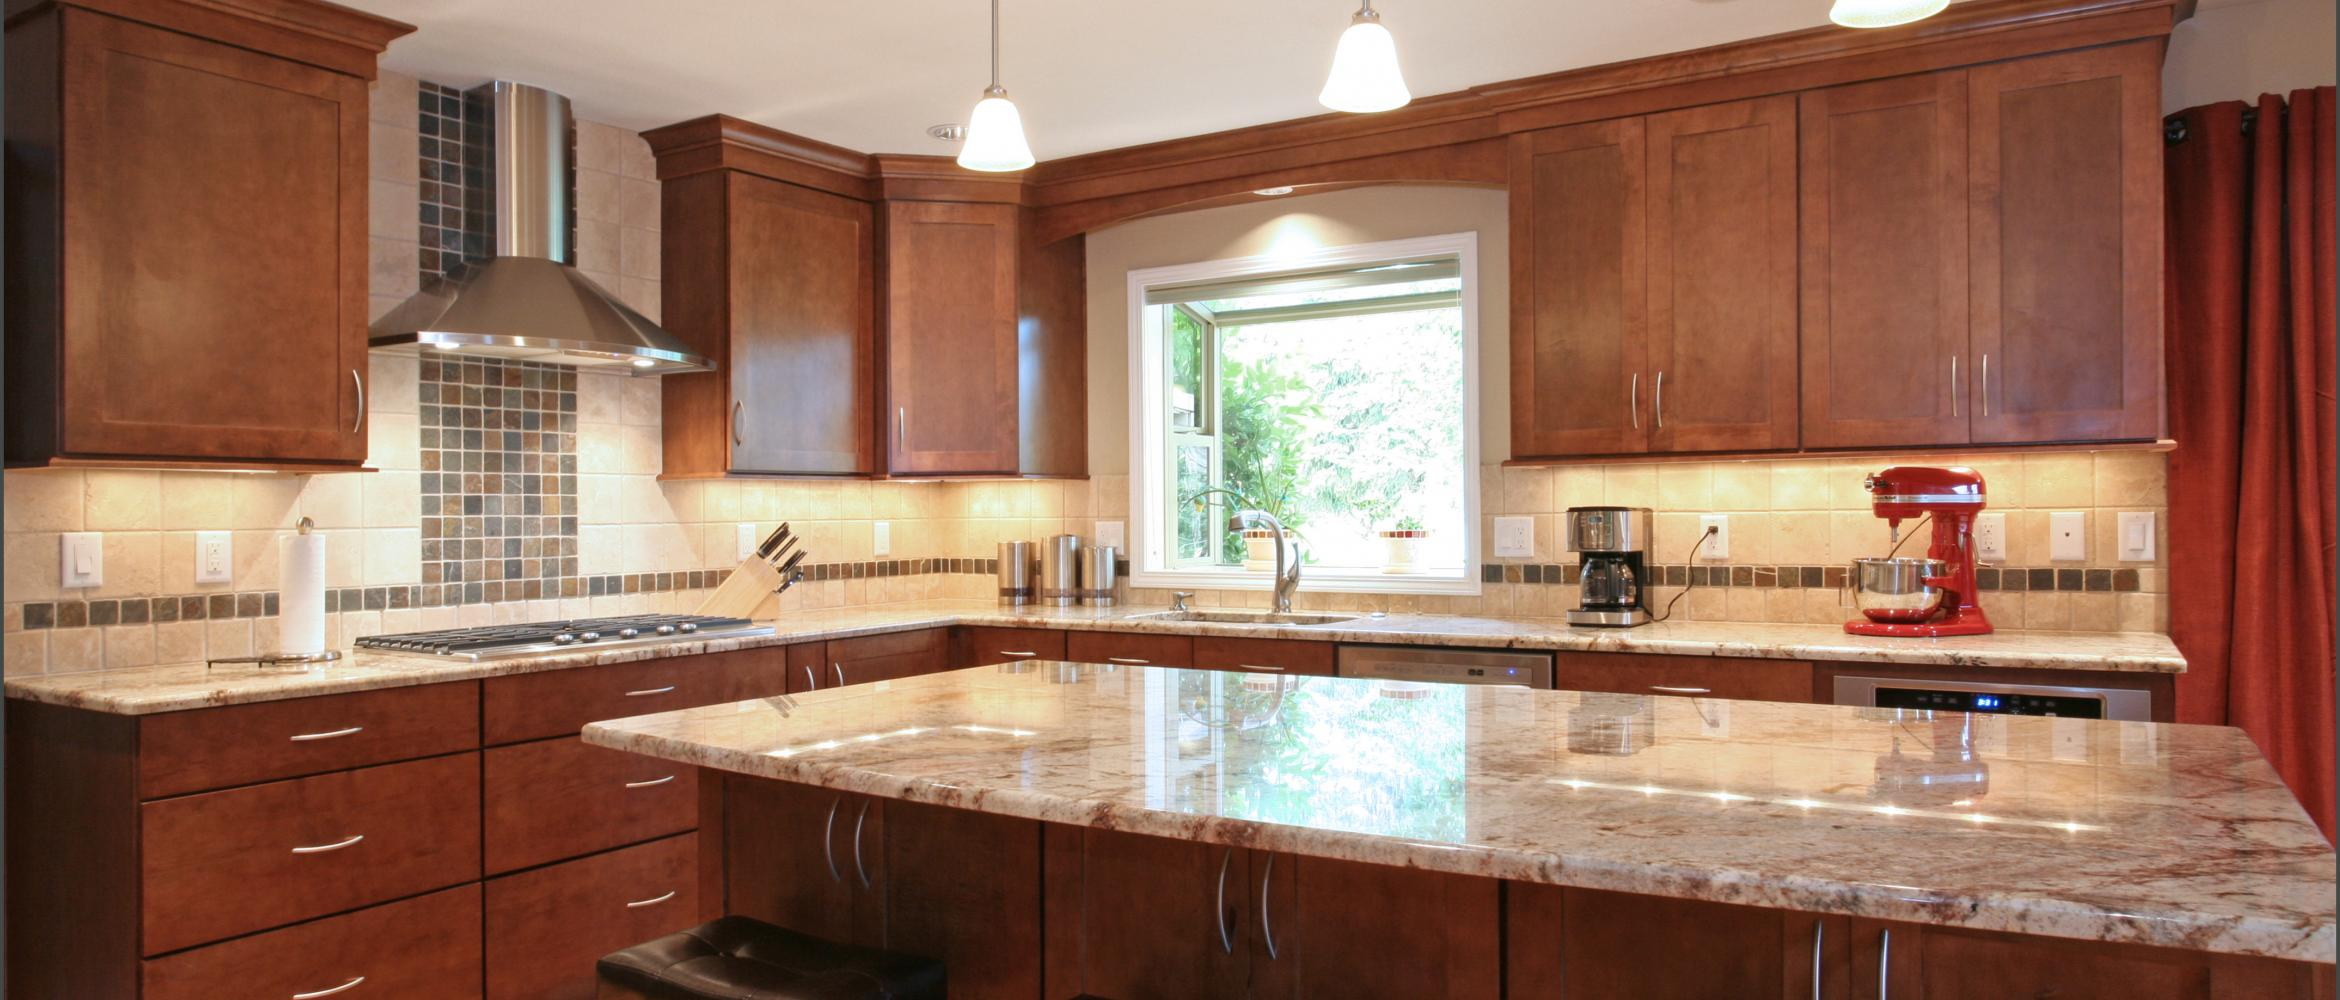 kitchen remodeling contractors Kitchen Remodeling